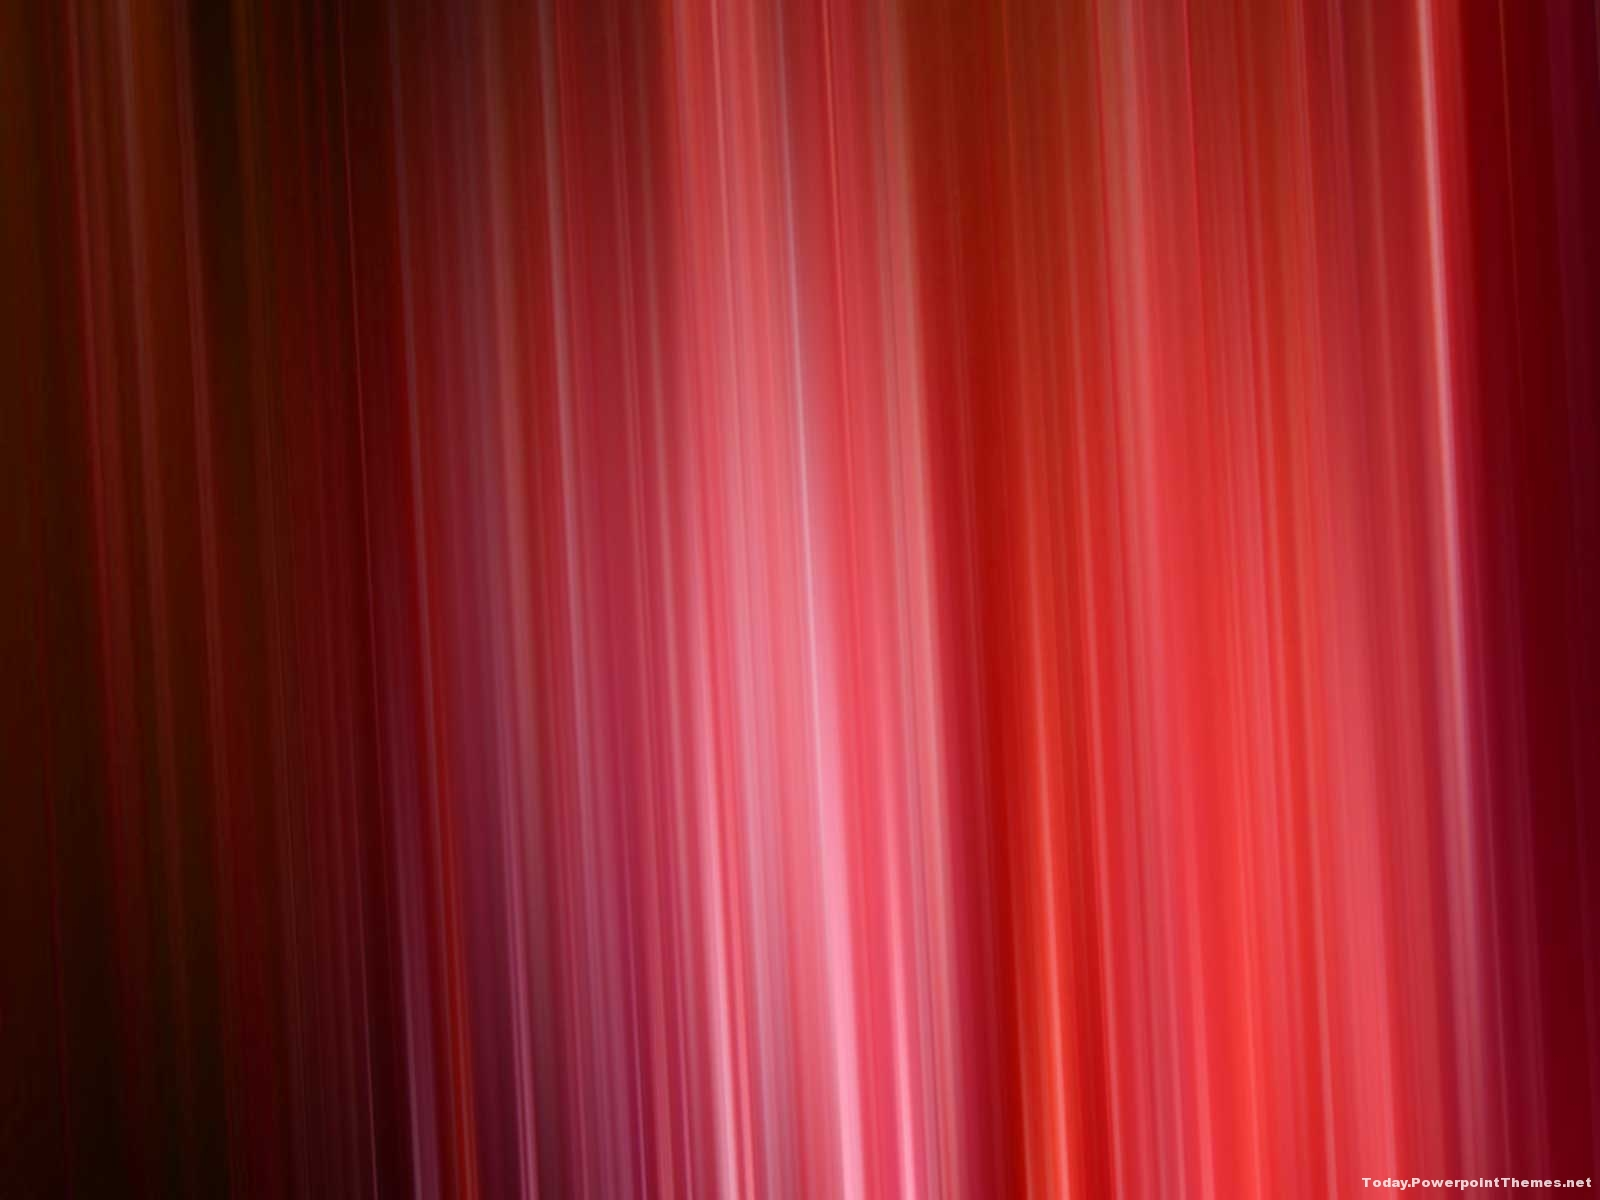 red-stripes-background-powerpoint